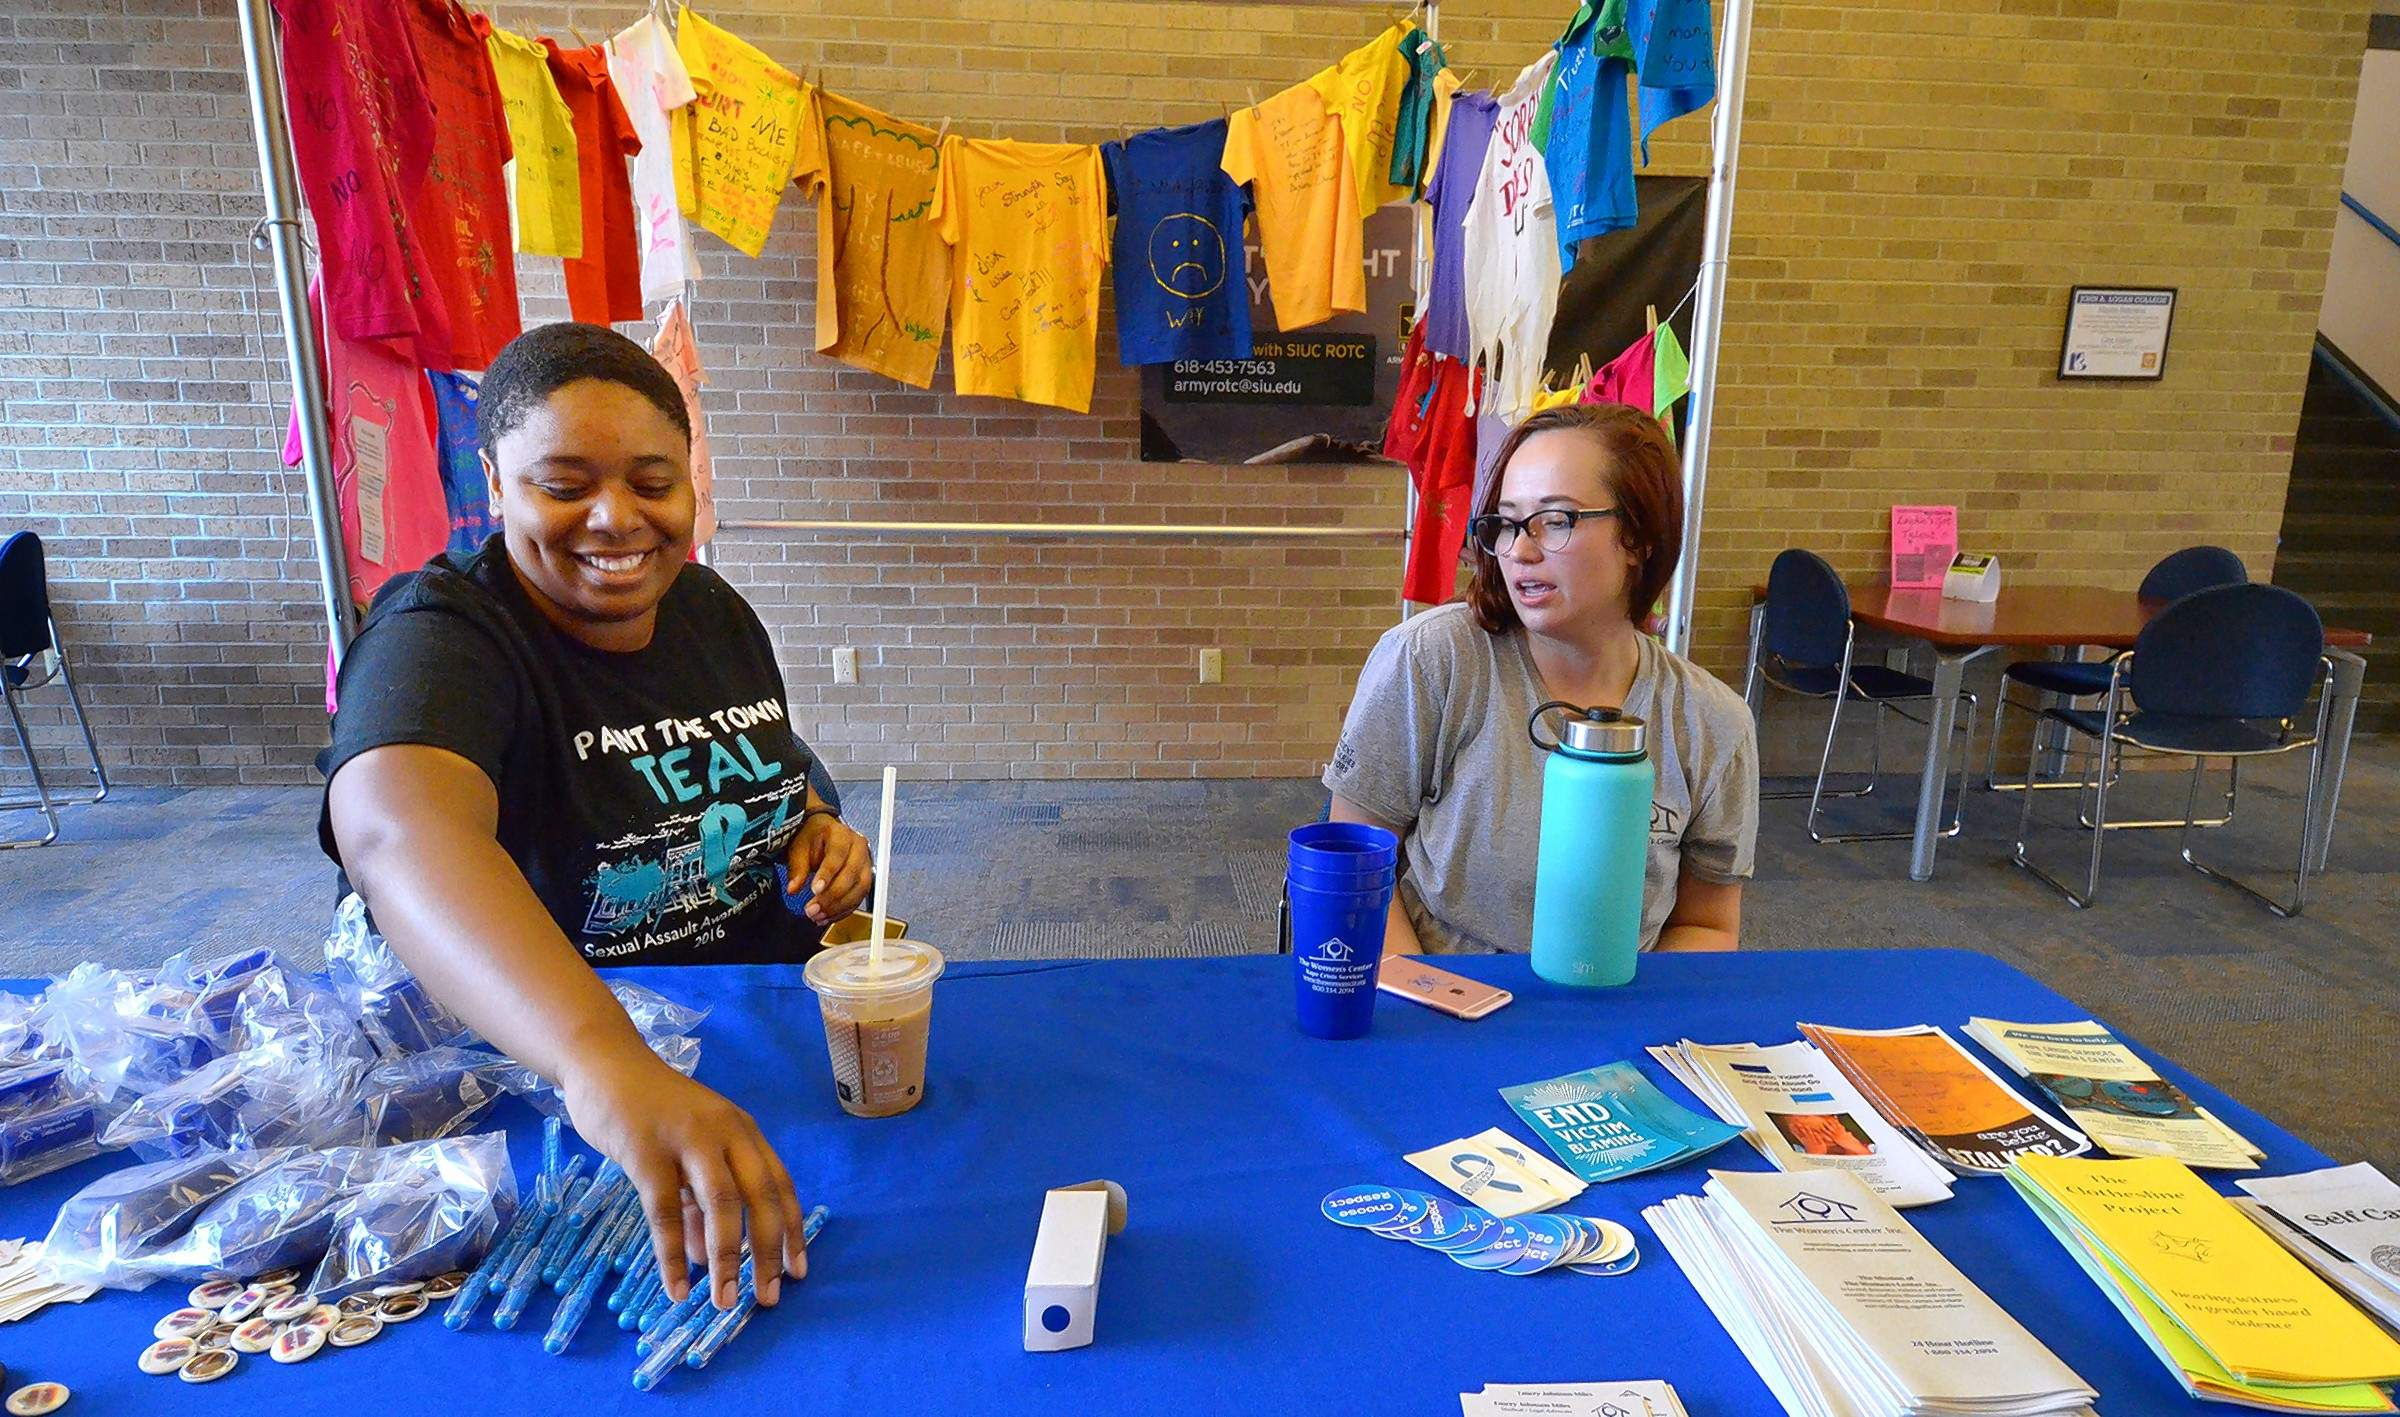 Desiree Brown and Allyson Stevens spent several hours Tuesday at this sobering display of T-shirts, which feature decorative expressions of feelings by victims of violence and abuse.